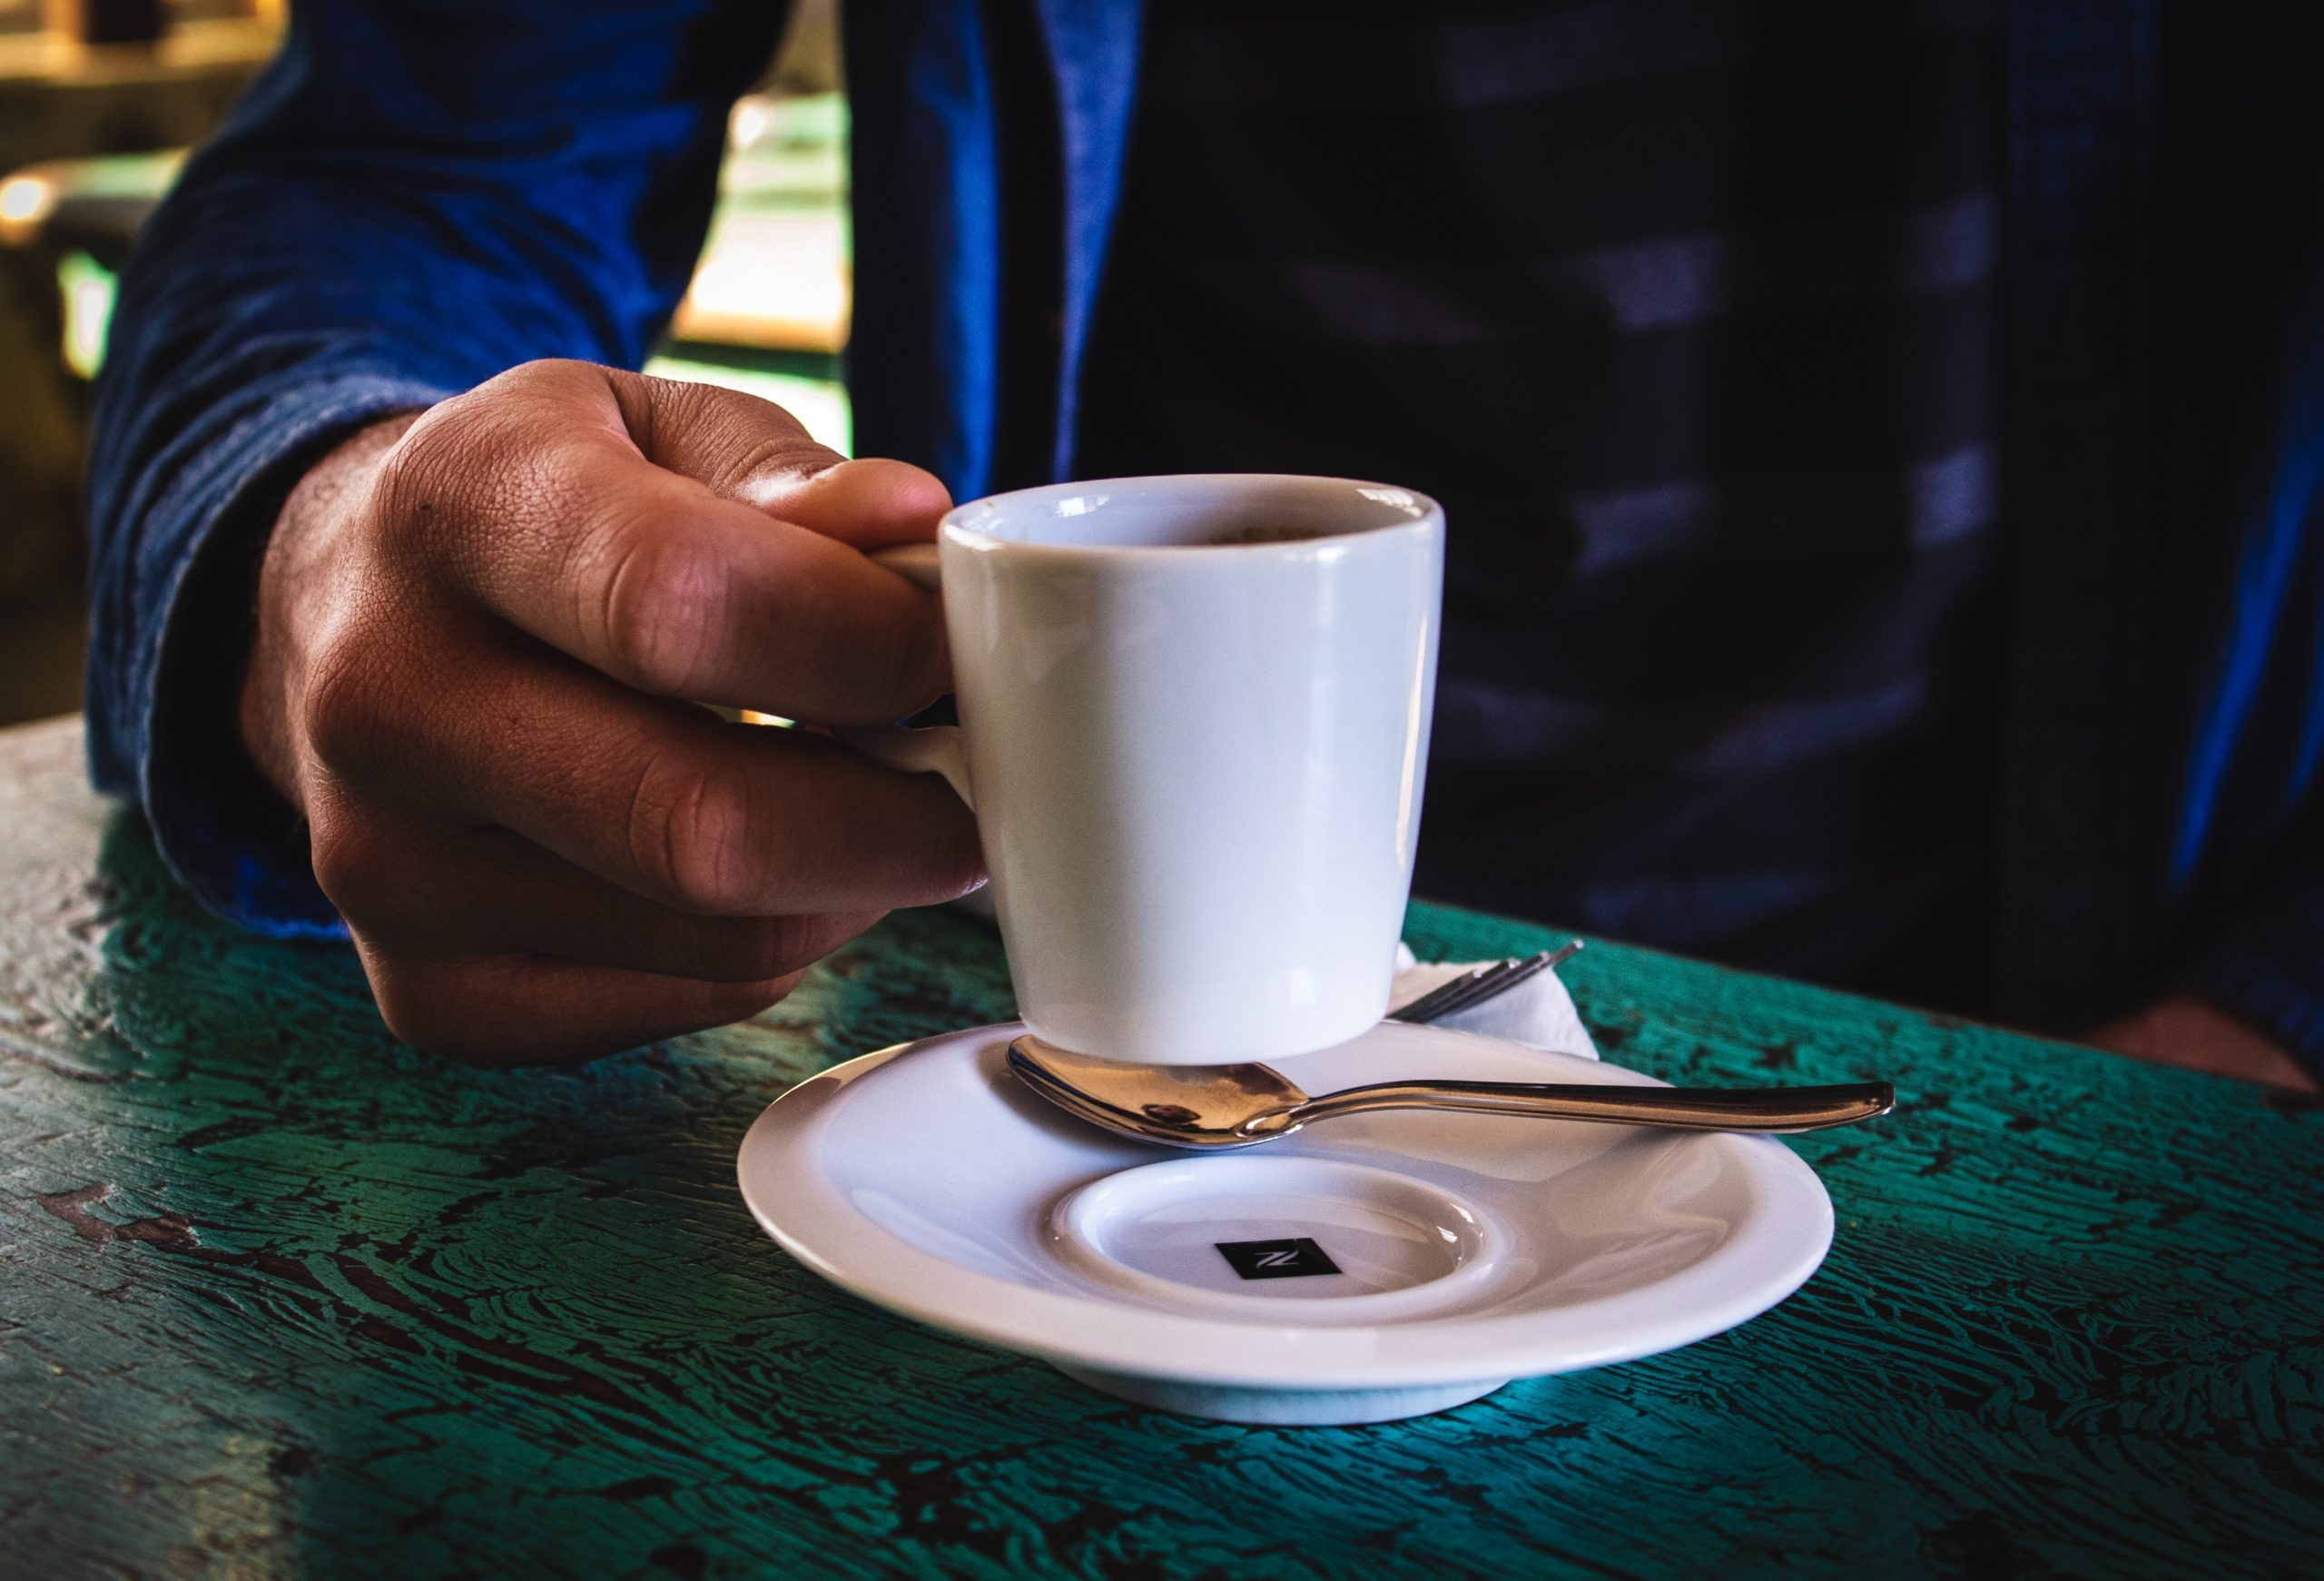 How to Avoid an Upset Stomach from Coffee